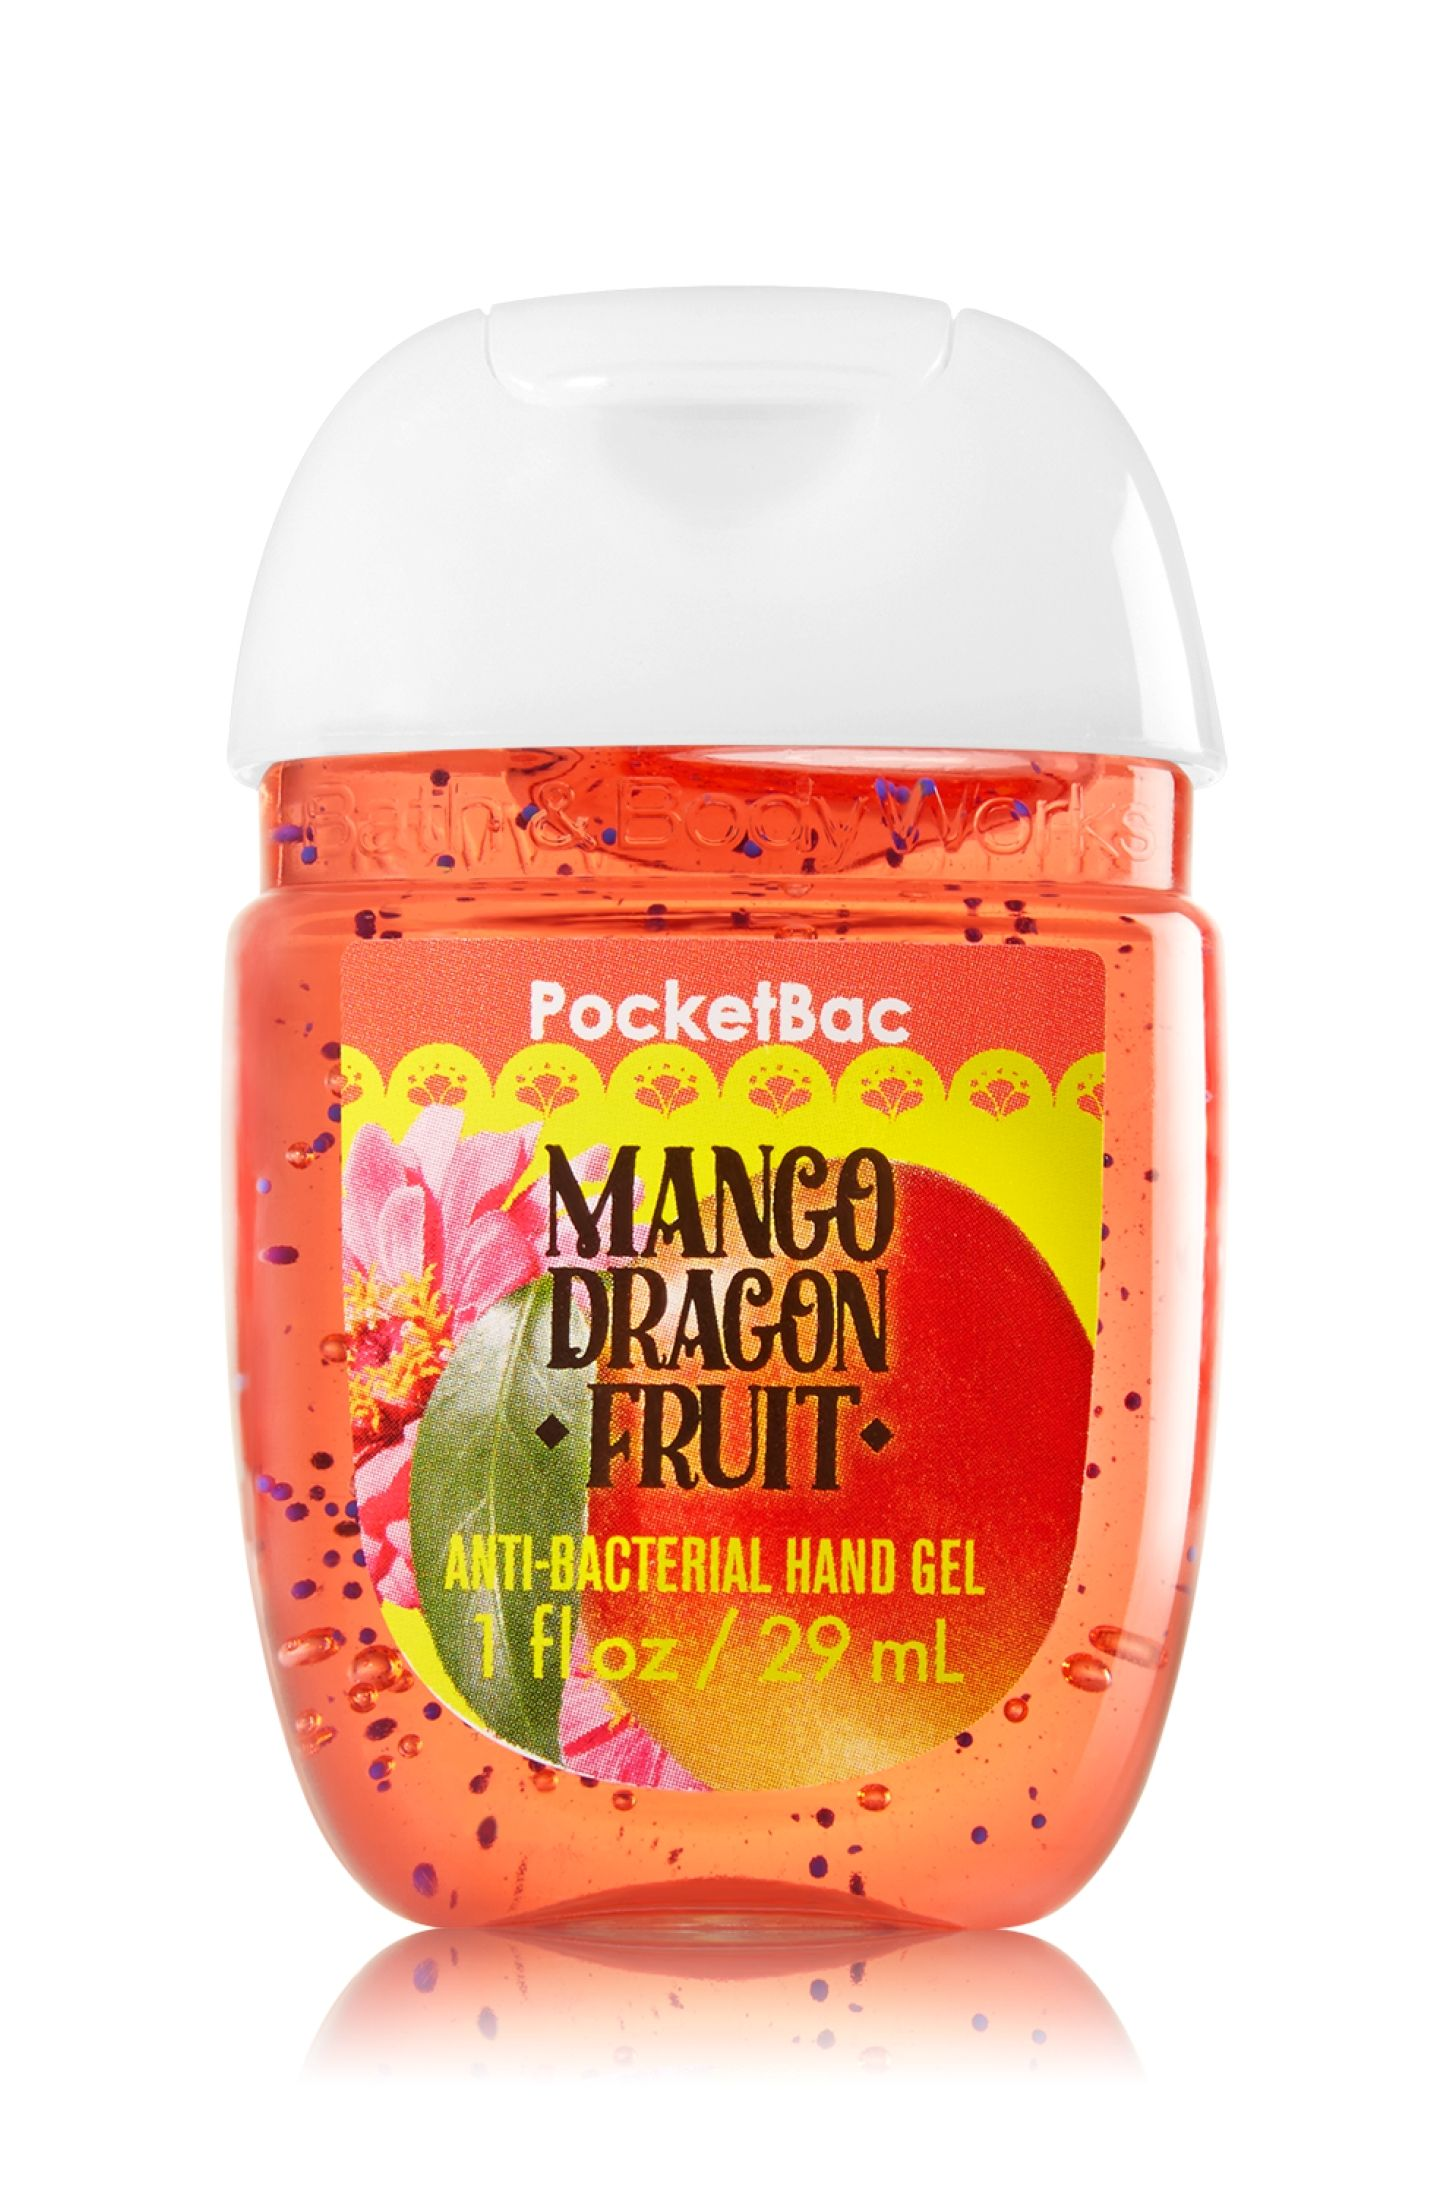 Bath Body Works Mango Dragon Fruit Pocketbac Sanitizing Hand Gel